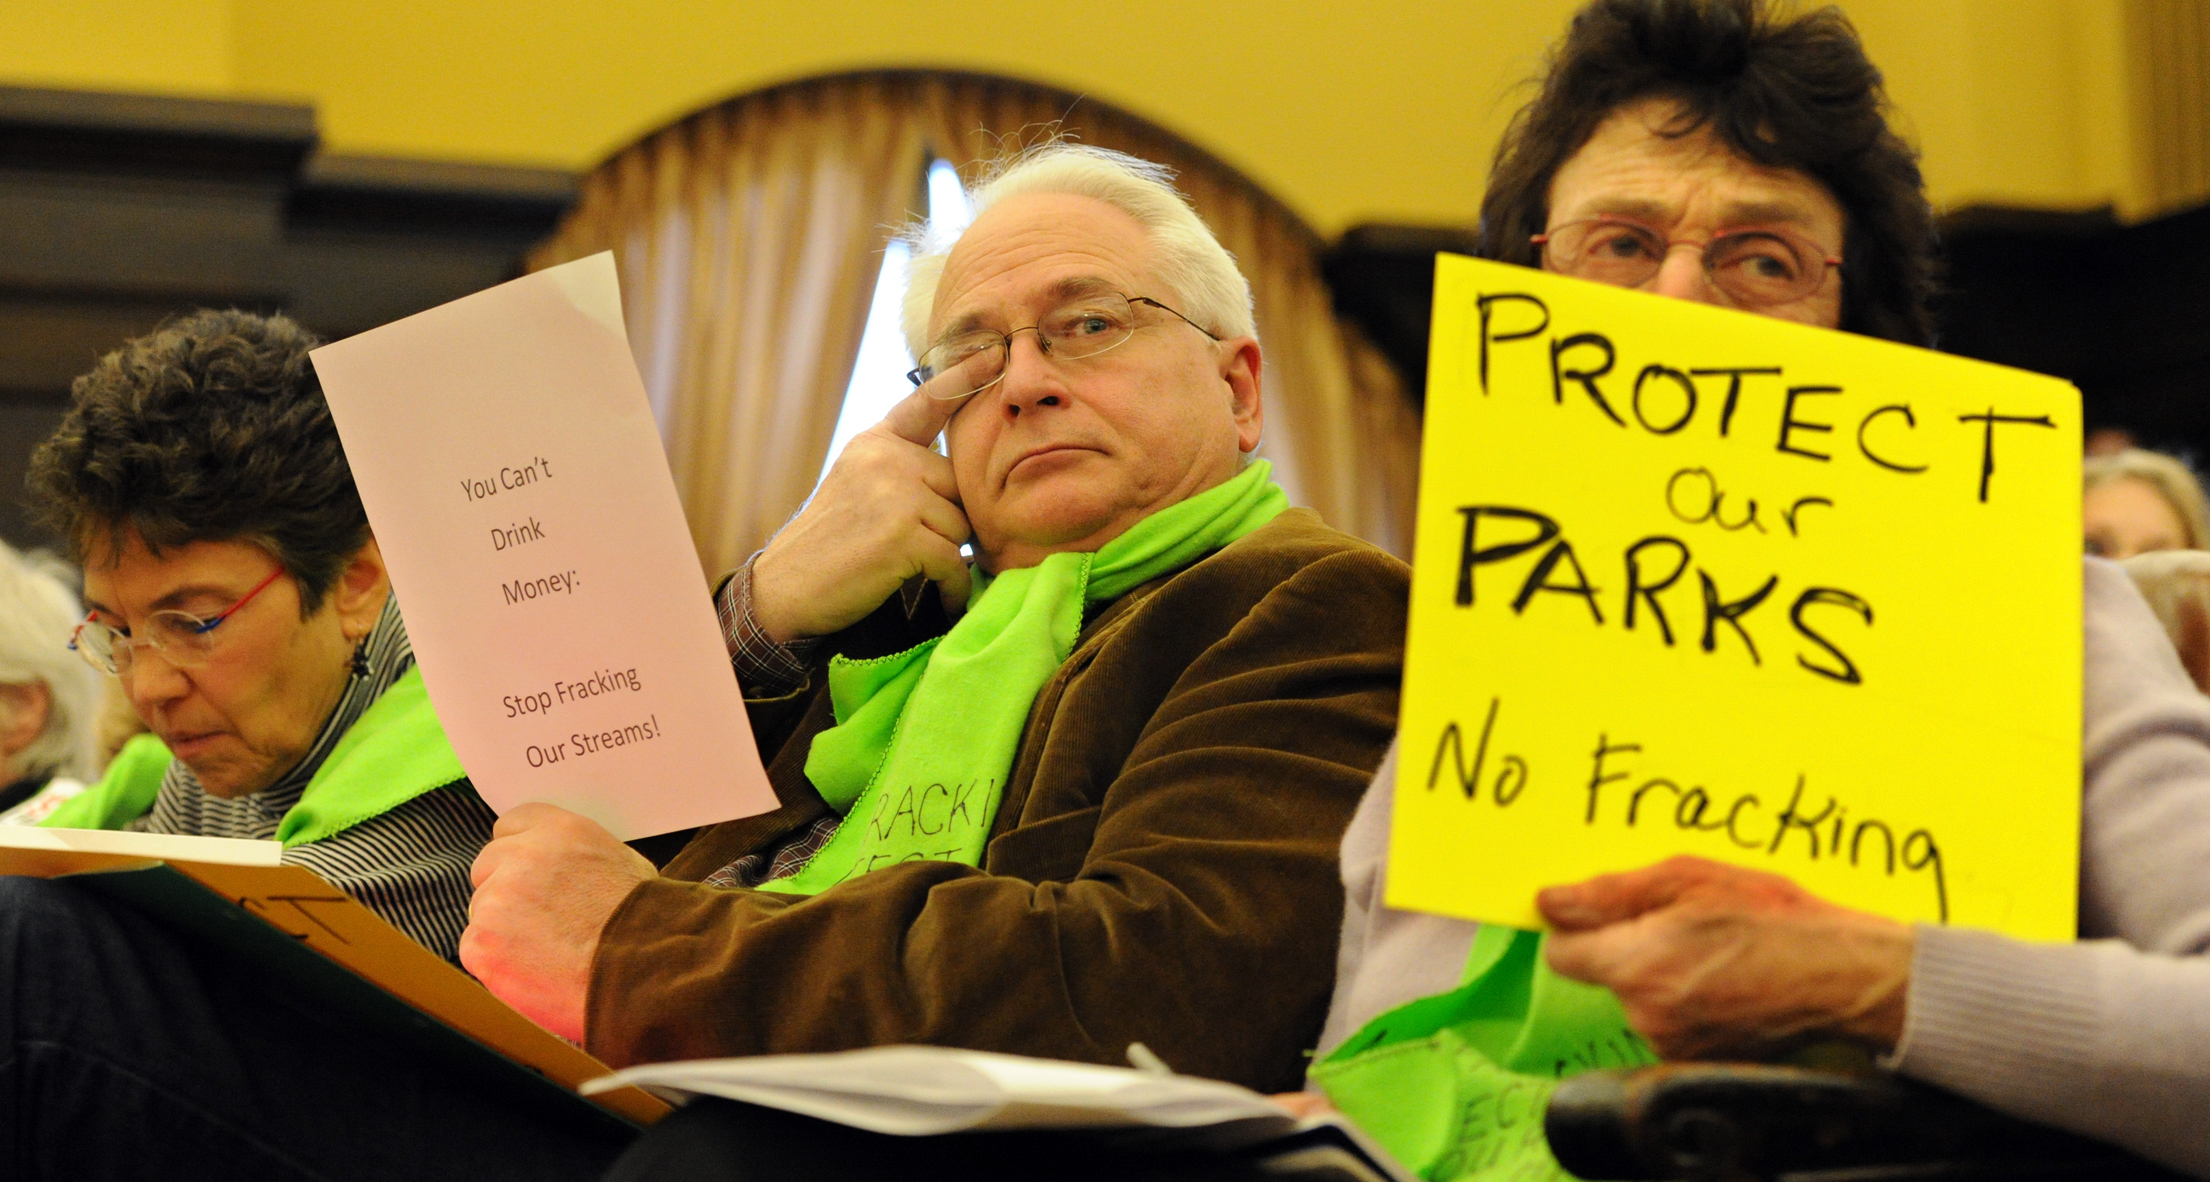 20140318JHLocalDrill01 Michael Simms, left, and Joni Rabinowitz, right, listen to county Executive Rich Fitzgerald talk about the agreement reached for drilling for natural gas under Deer Lakes Park. The protesters were at Tuesday's county council meeting.